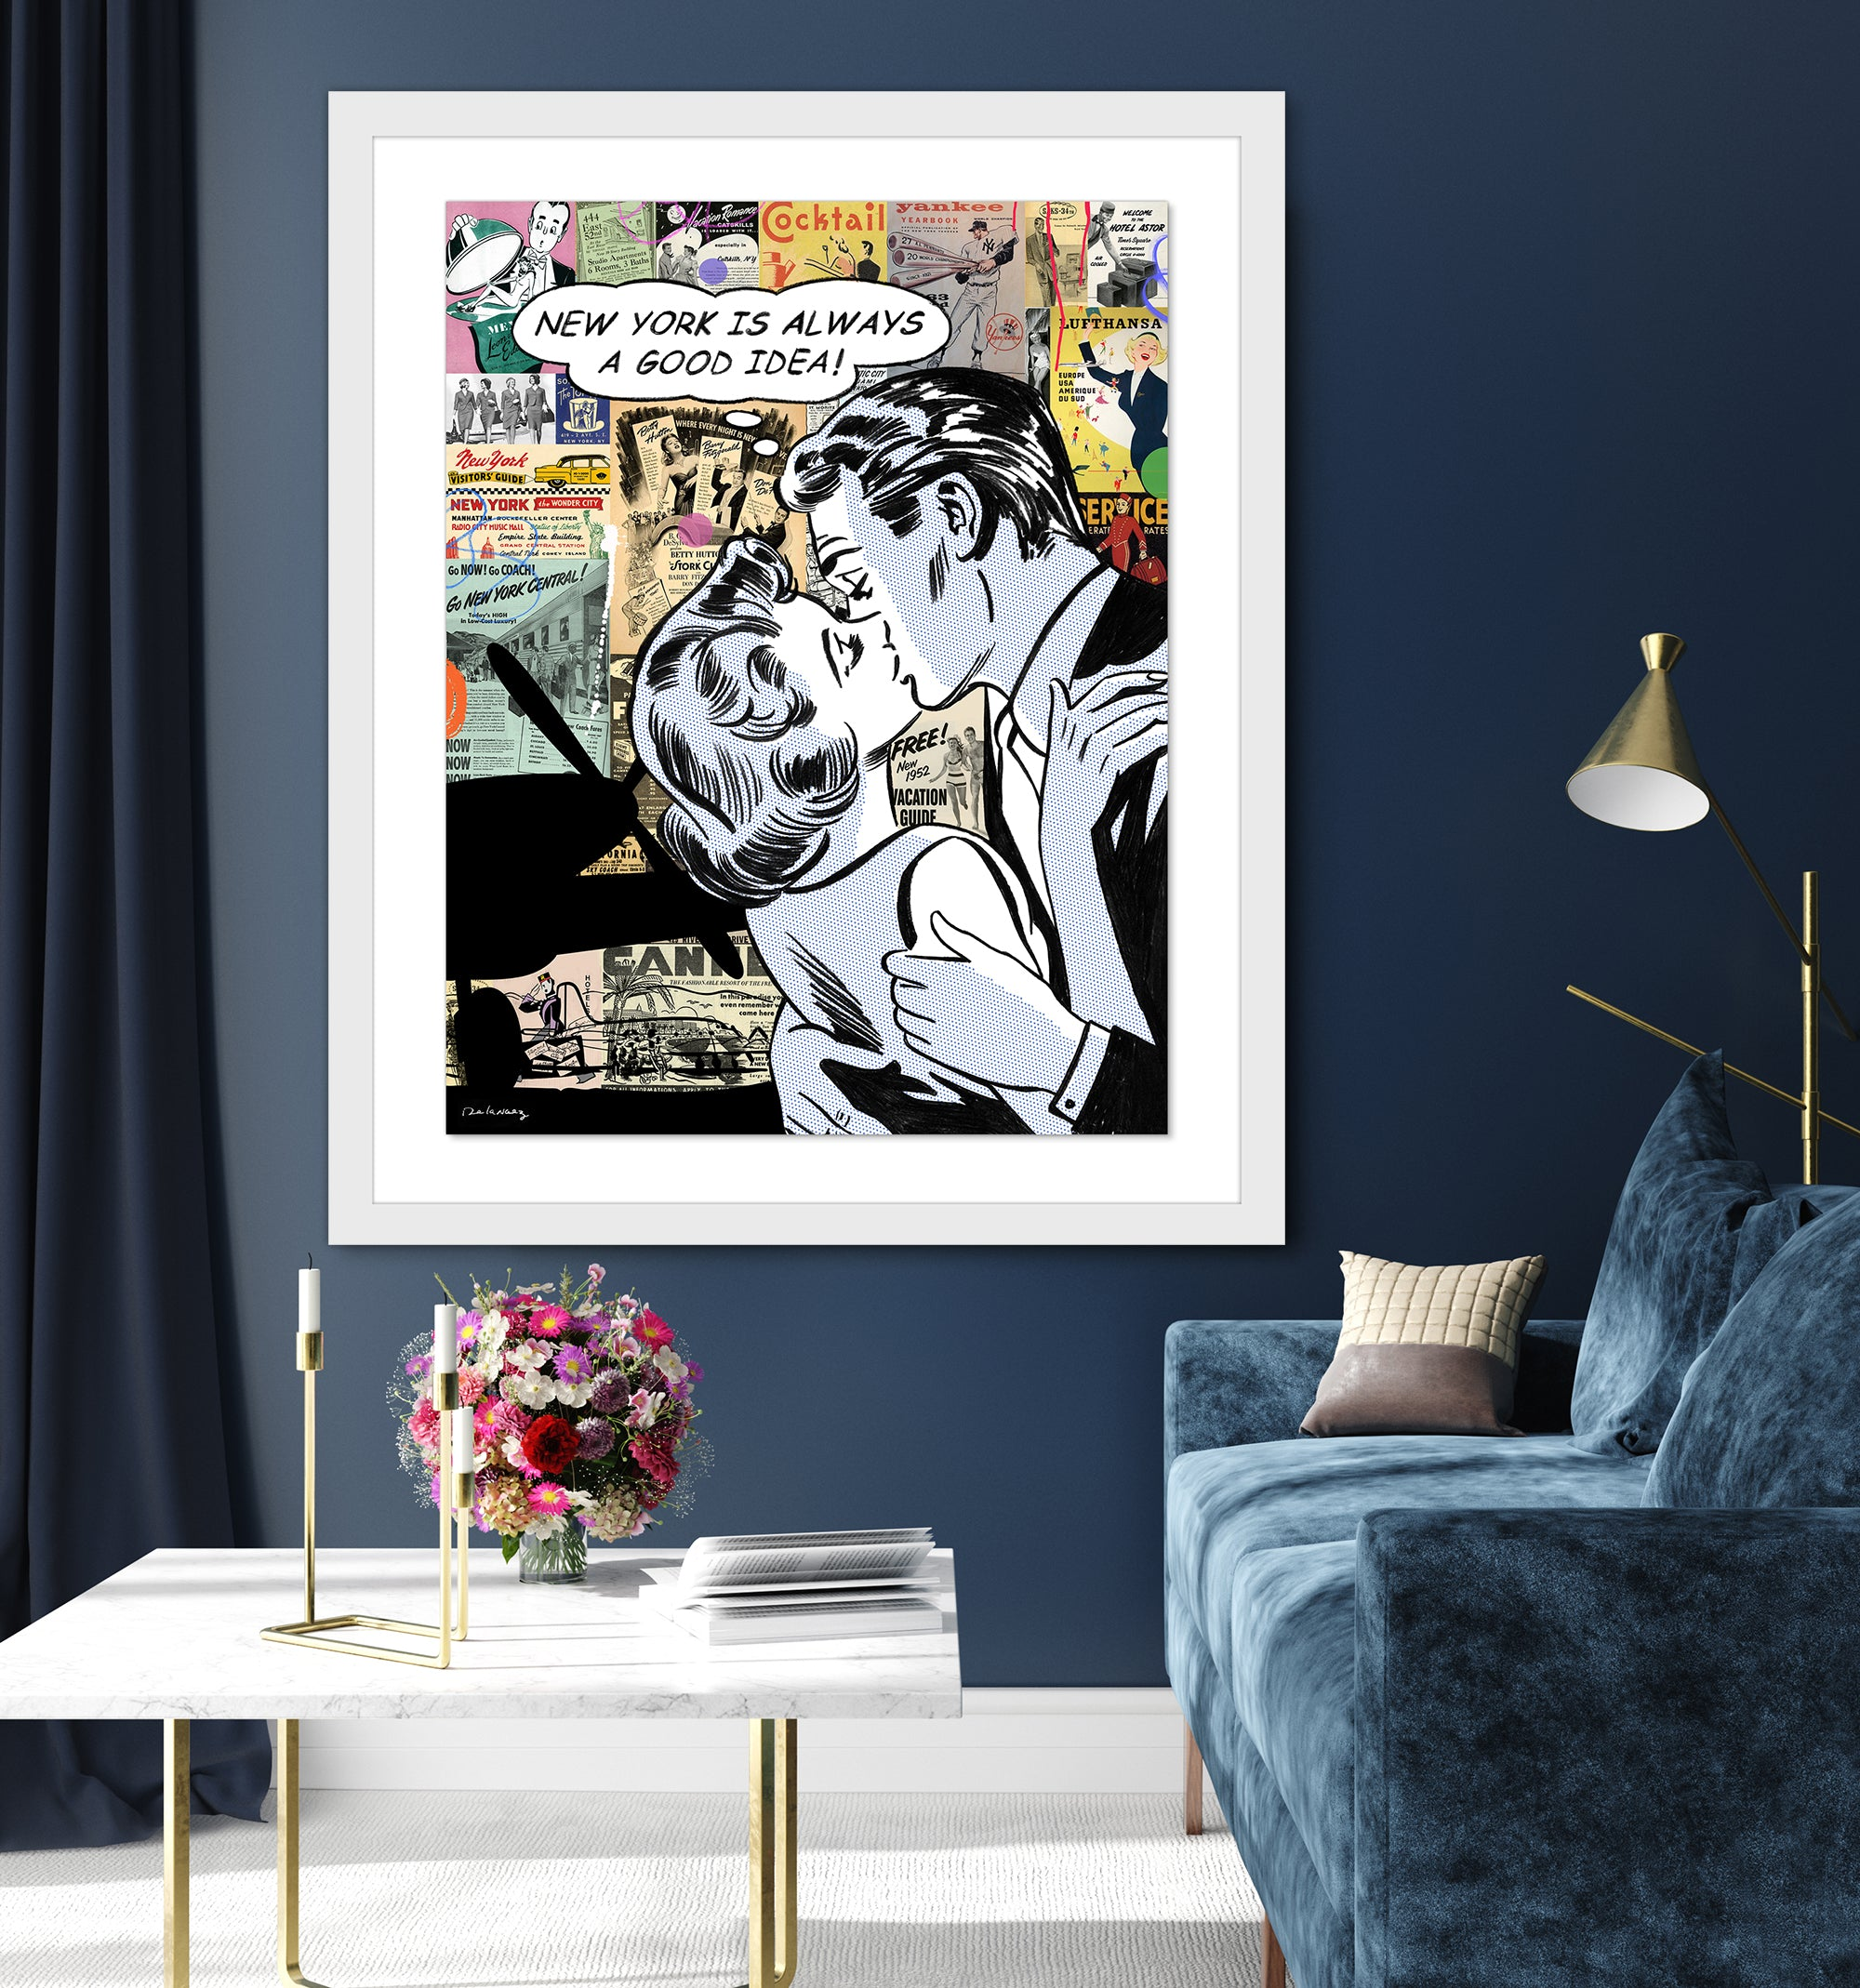 king of pop art nelson de la nuez lets fly away new york vacation love romance travel couple kiss